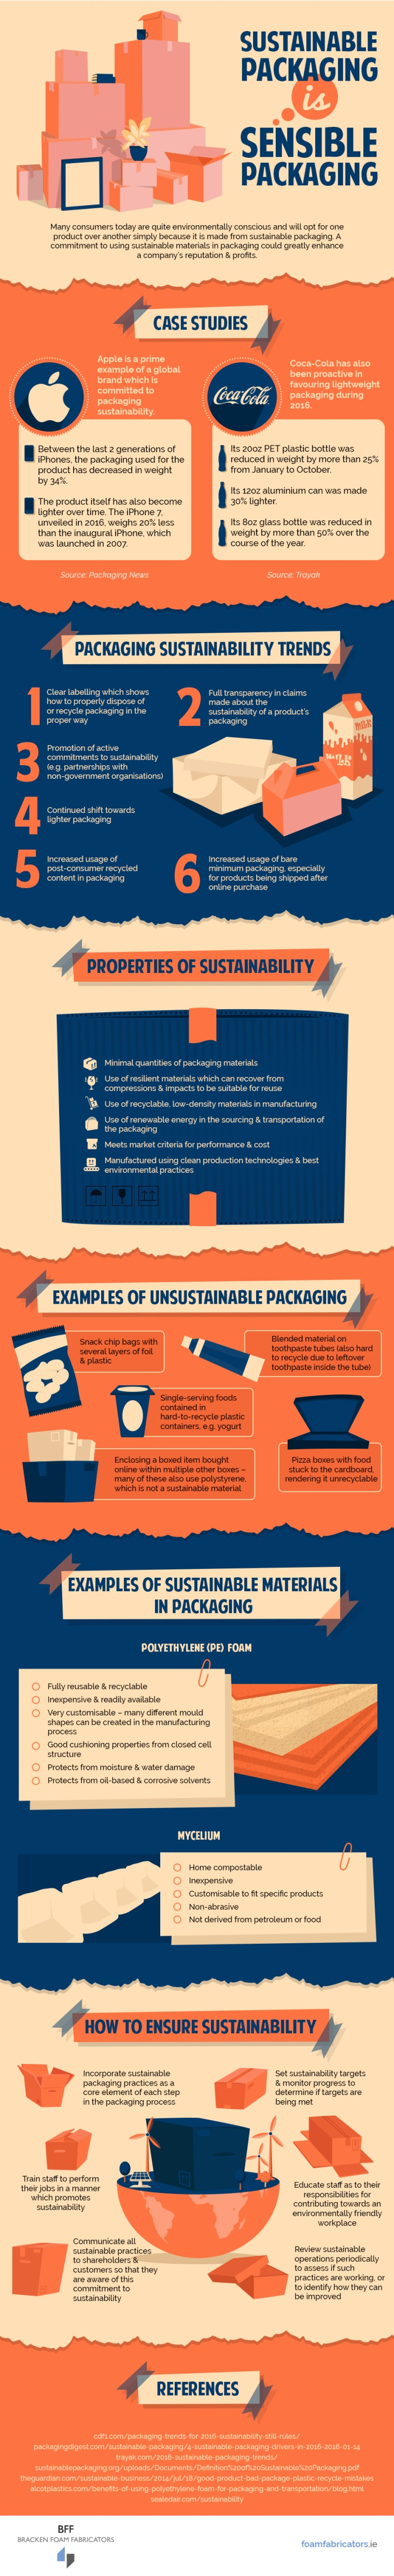 Sustainability Packaging Benefits